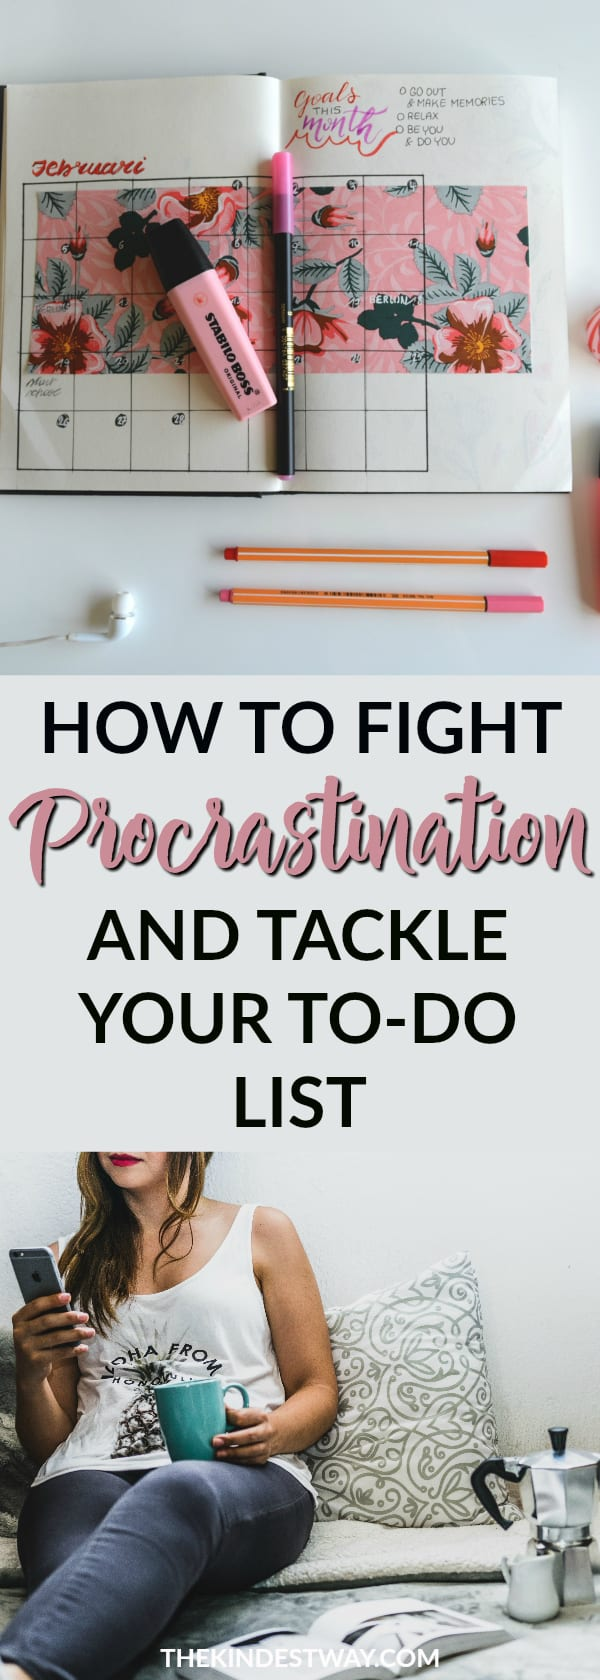 How to Fight Procrastination and Stay on top of your to-do list. Life Hacks | Motivation | Procrastination | Organization Hacks #motivation #organization #procrastination #hacks